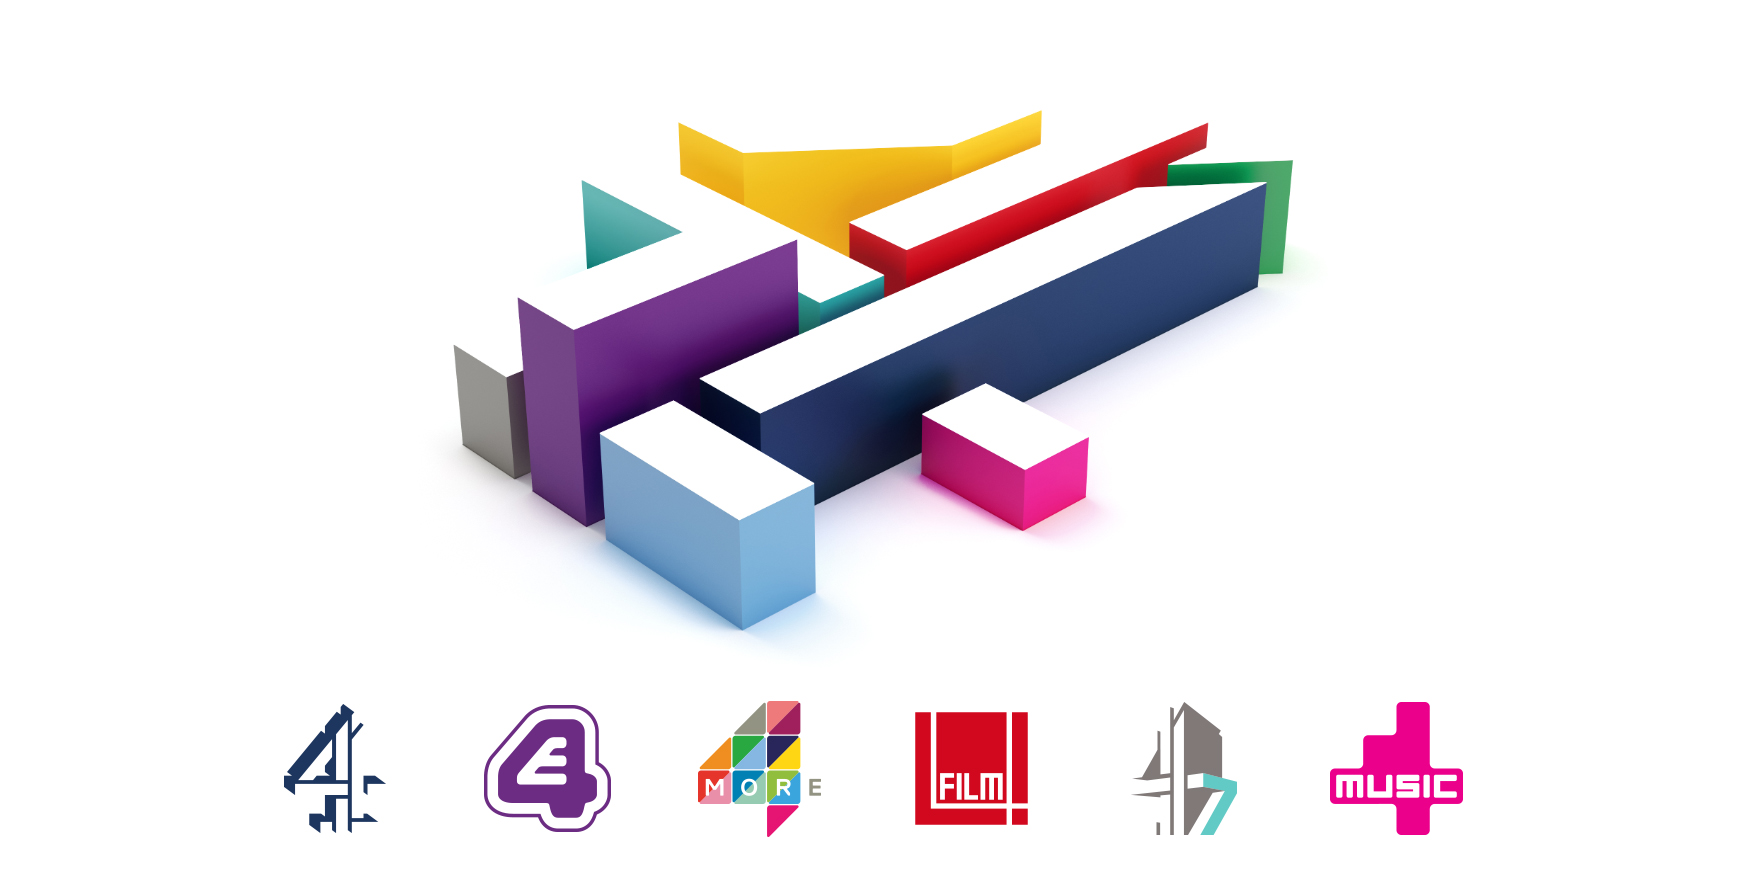 Channel 4 Brings Live Broadcast to Android